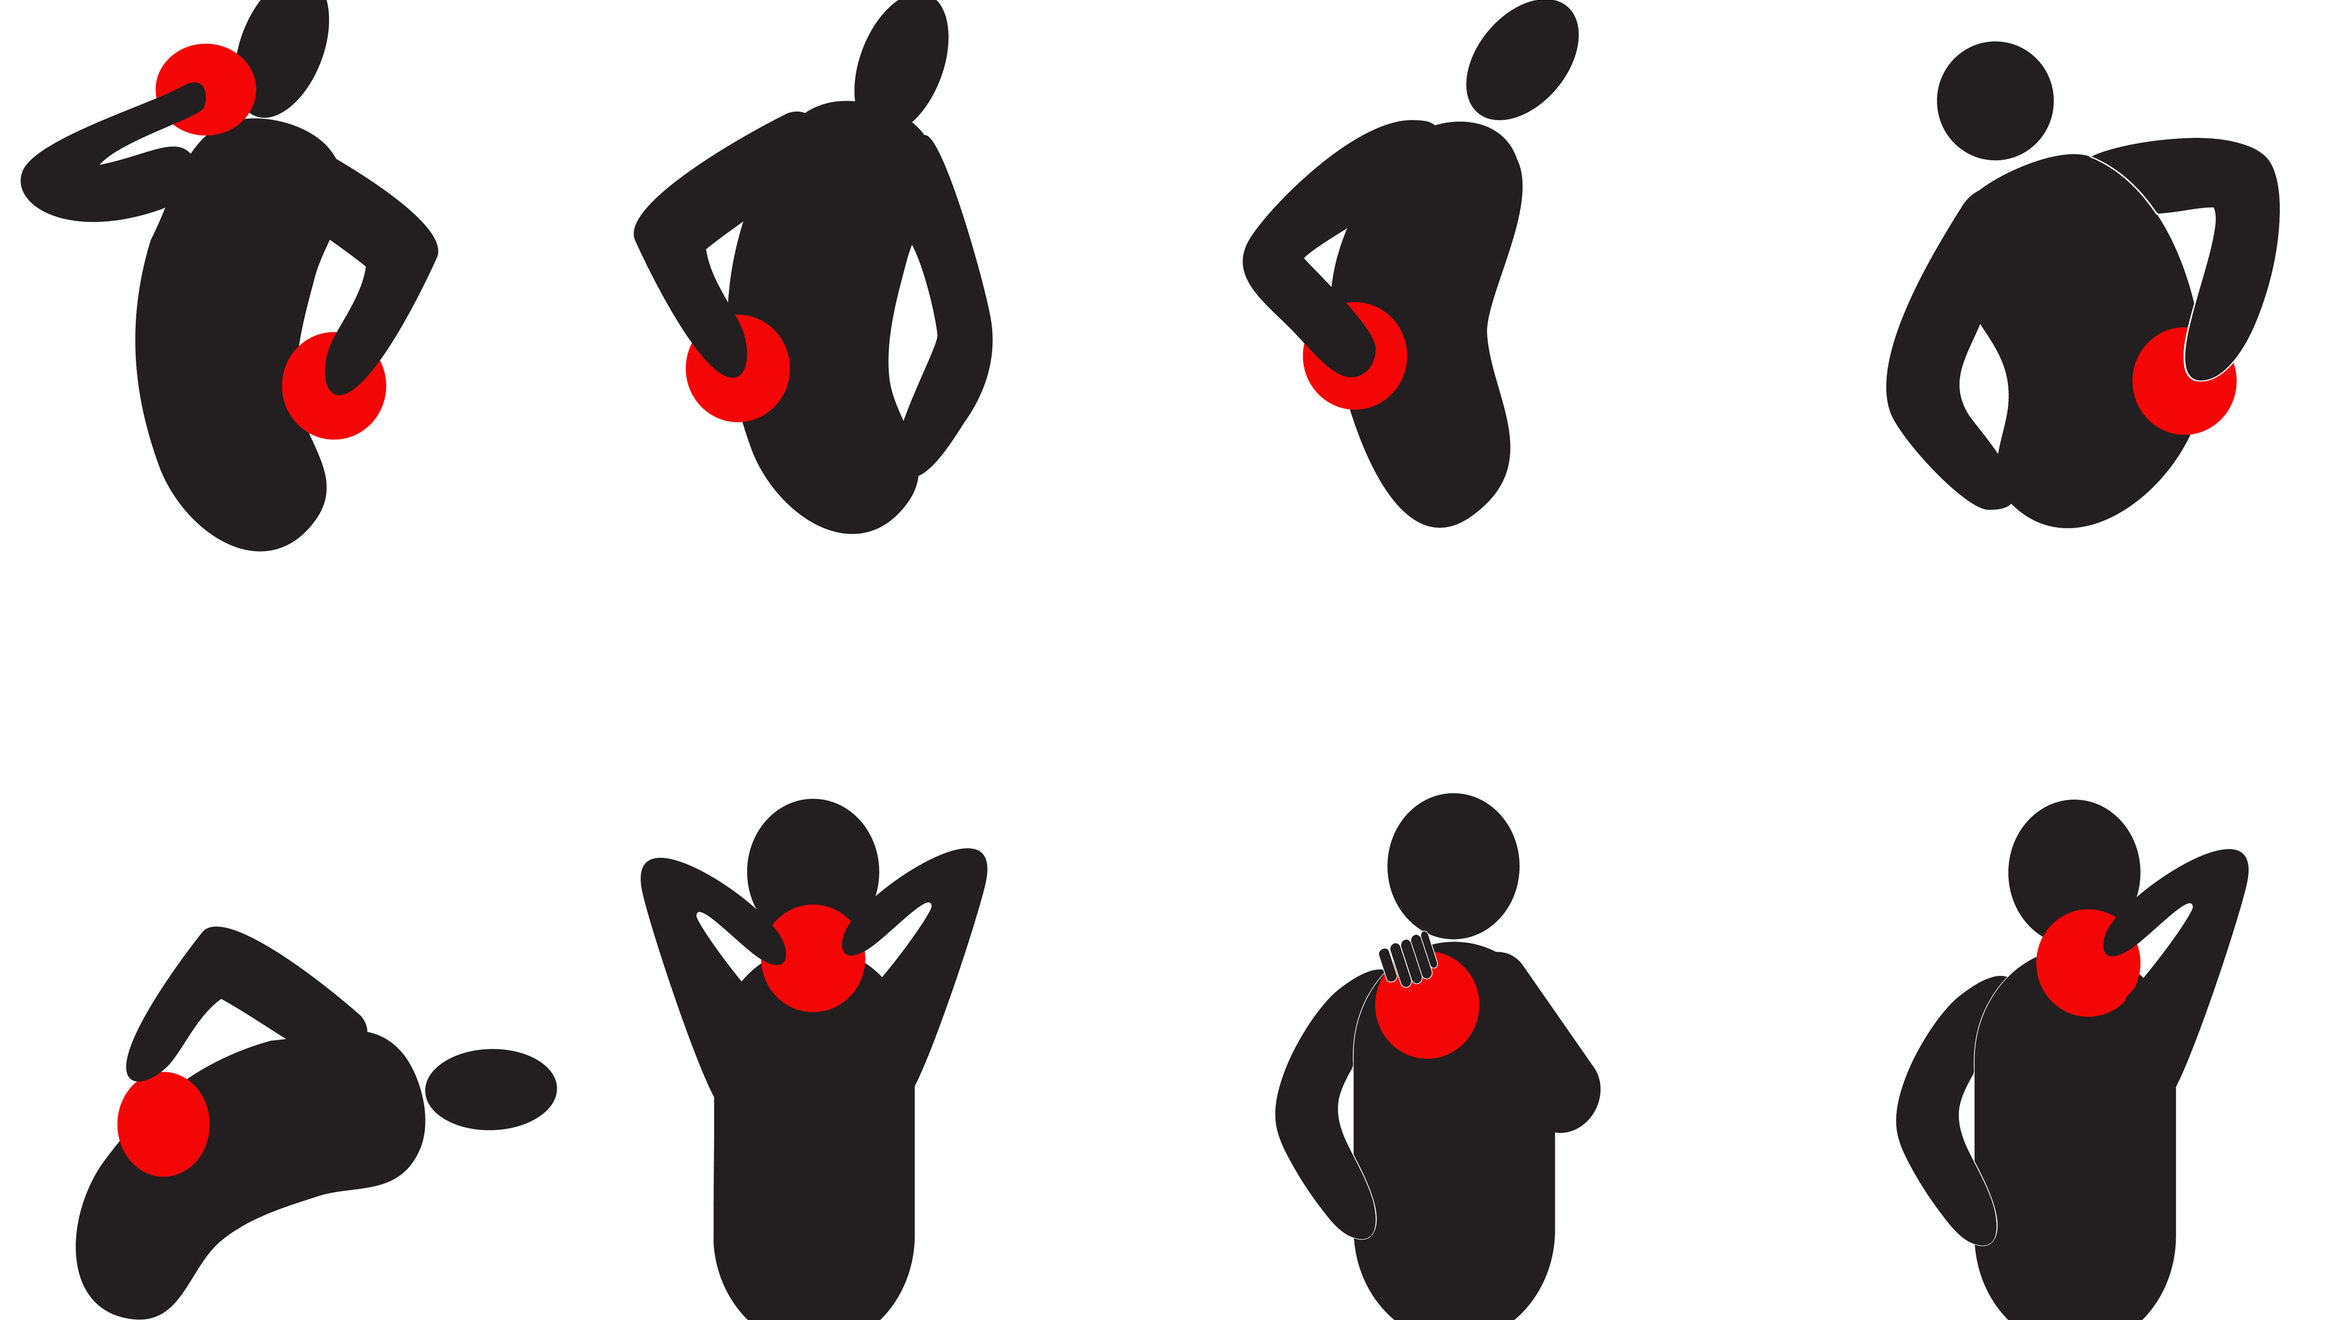 Black human silhouettes pointing to various points of pain indicated by red dots